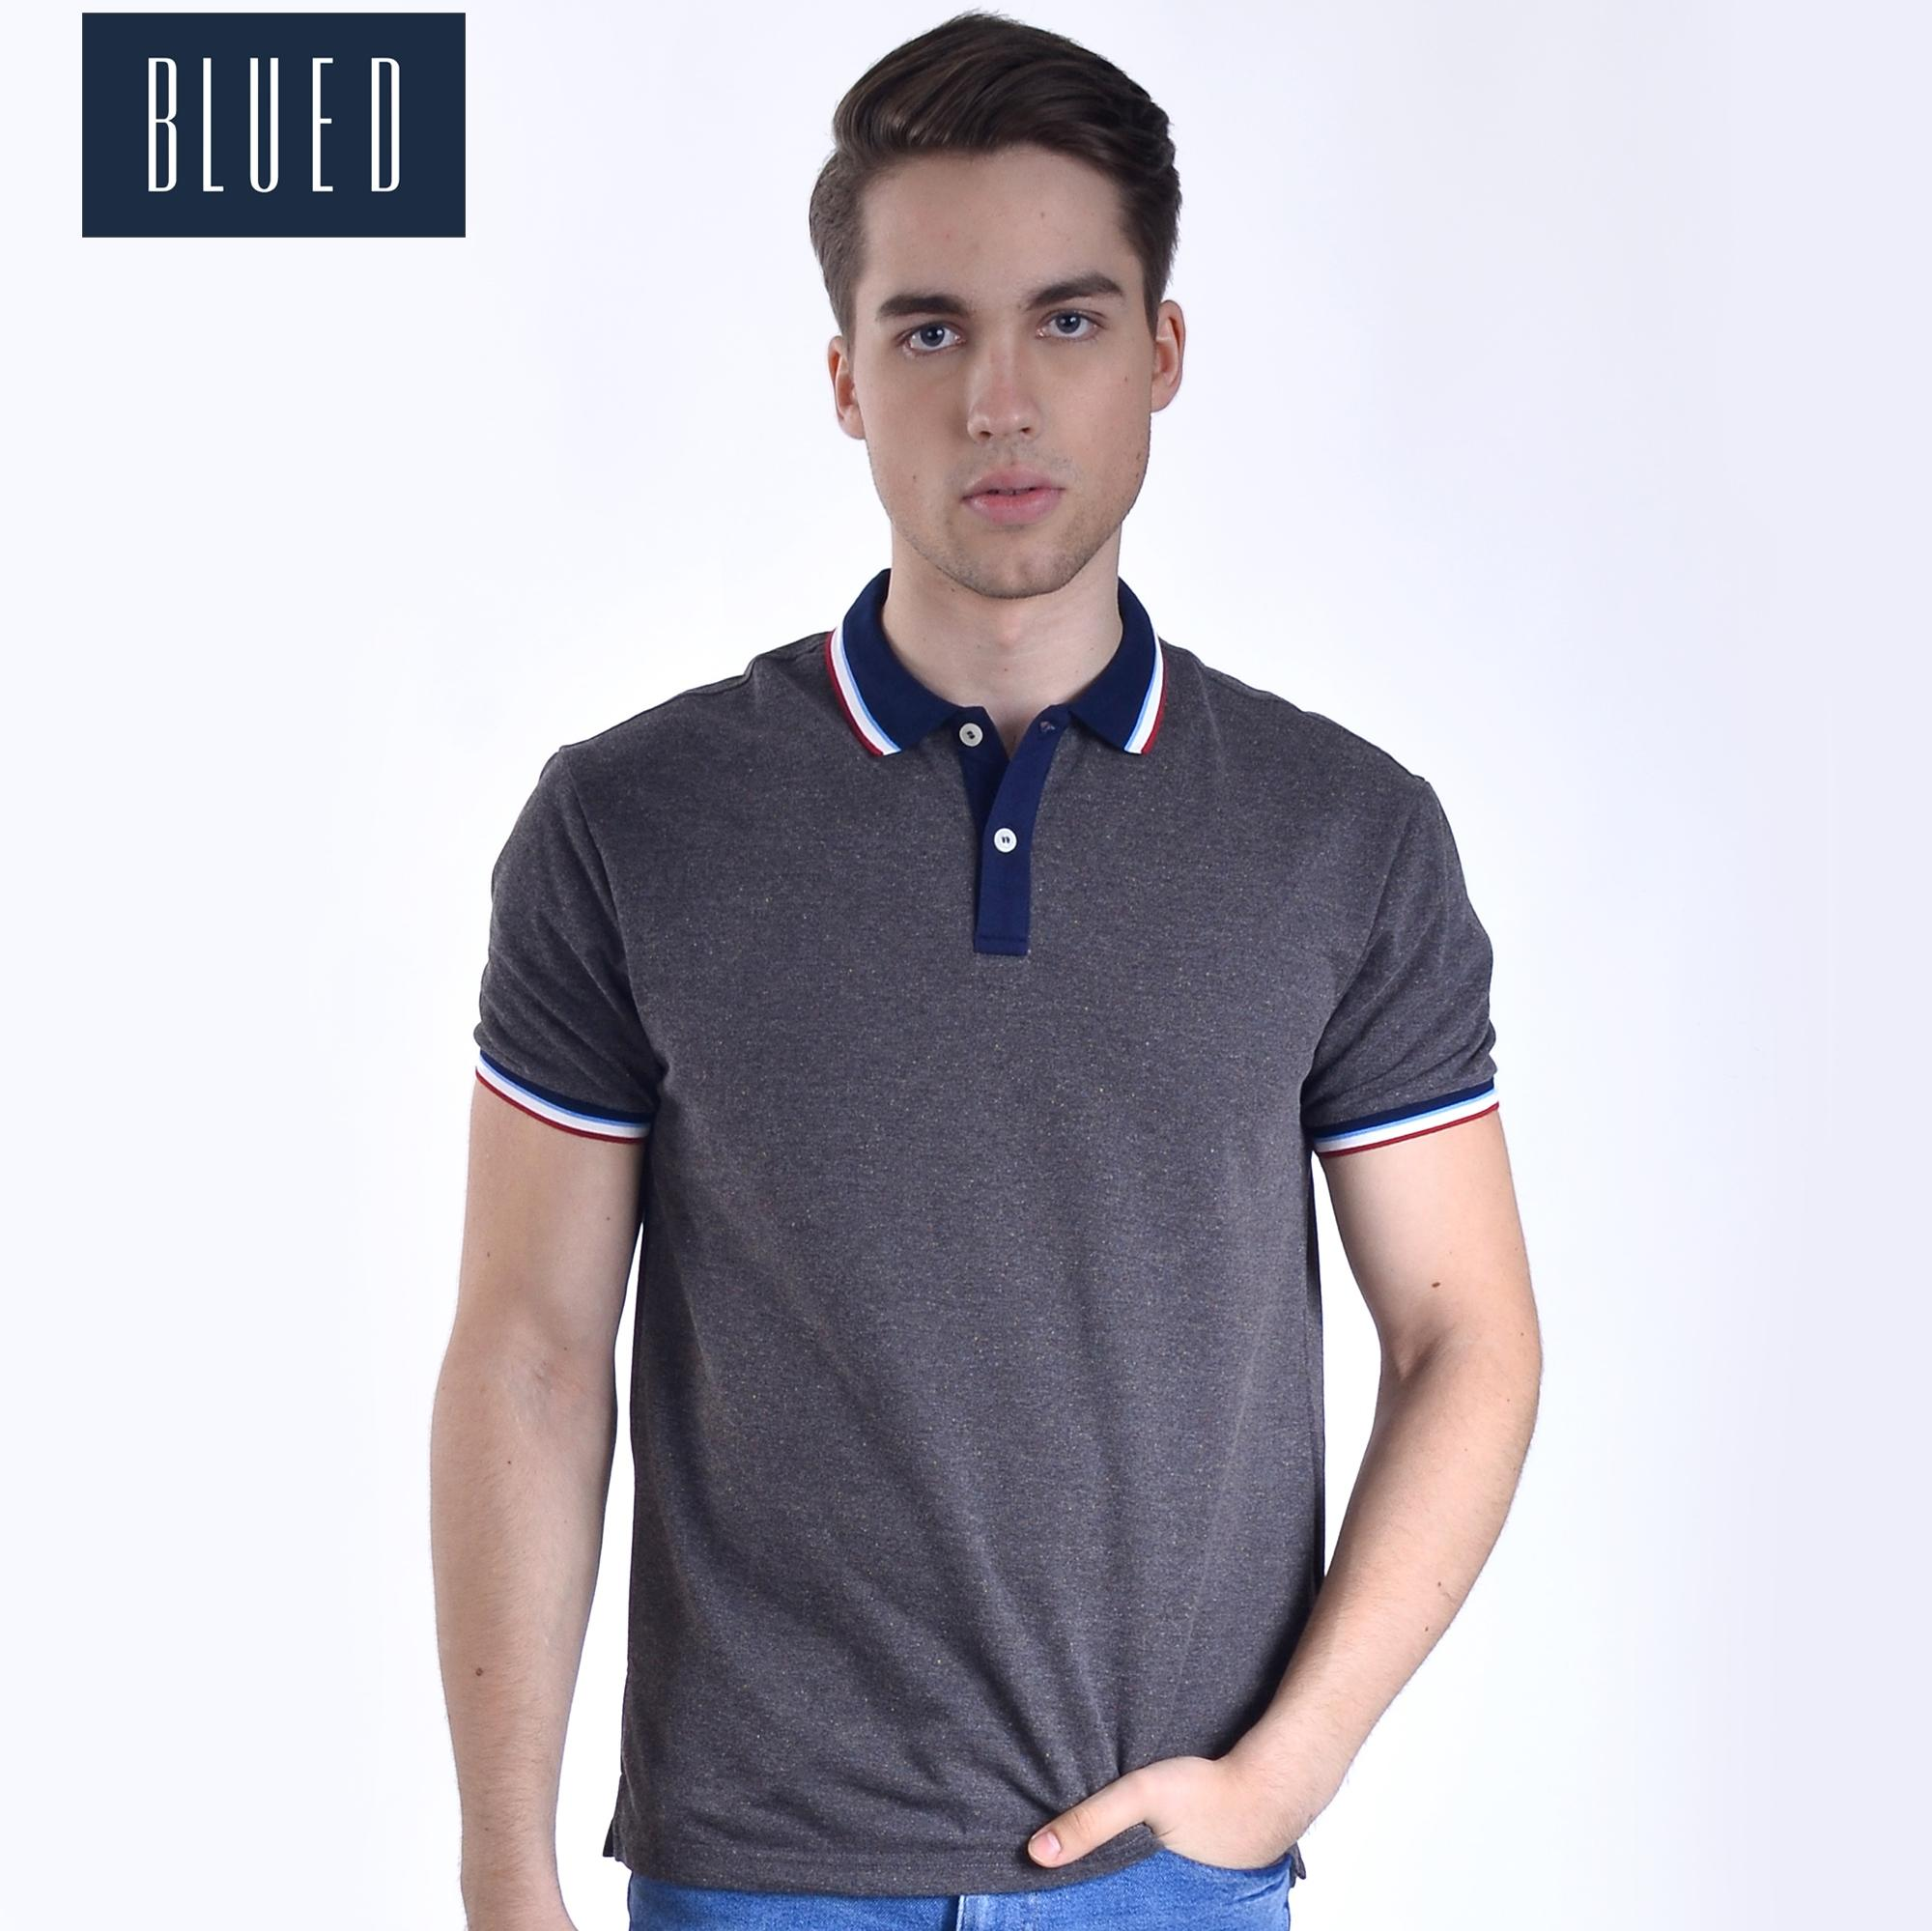 Blued Philippines Blued Price List Blued Polo T Shirt Dress